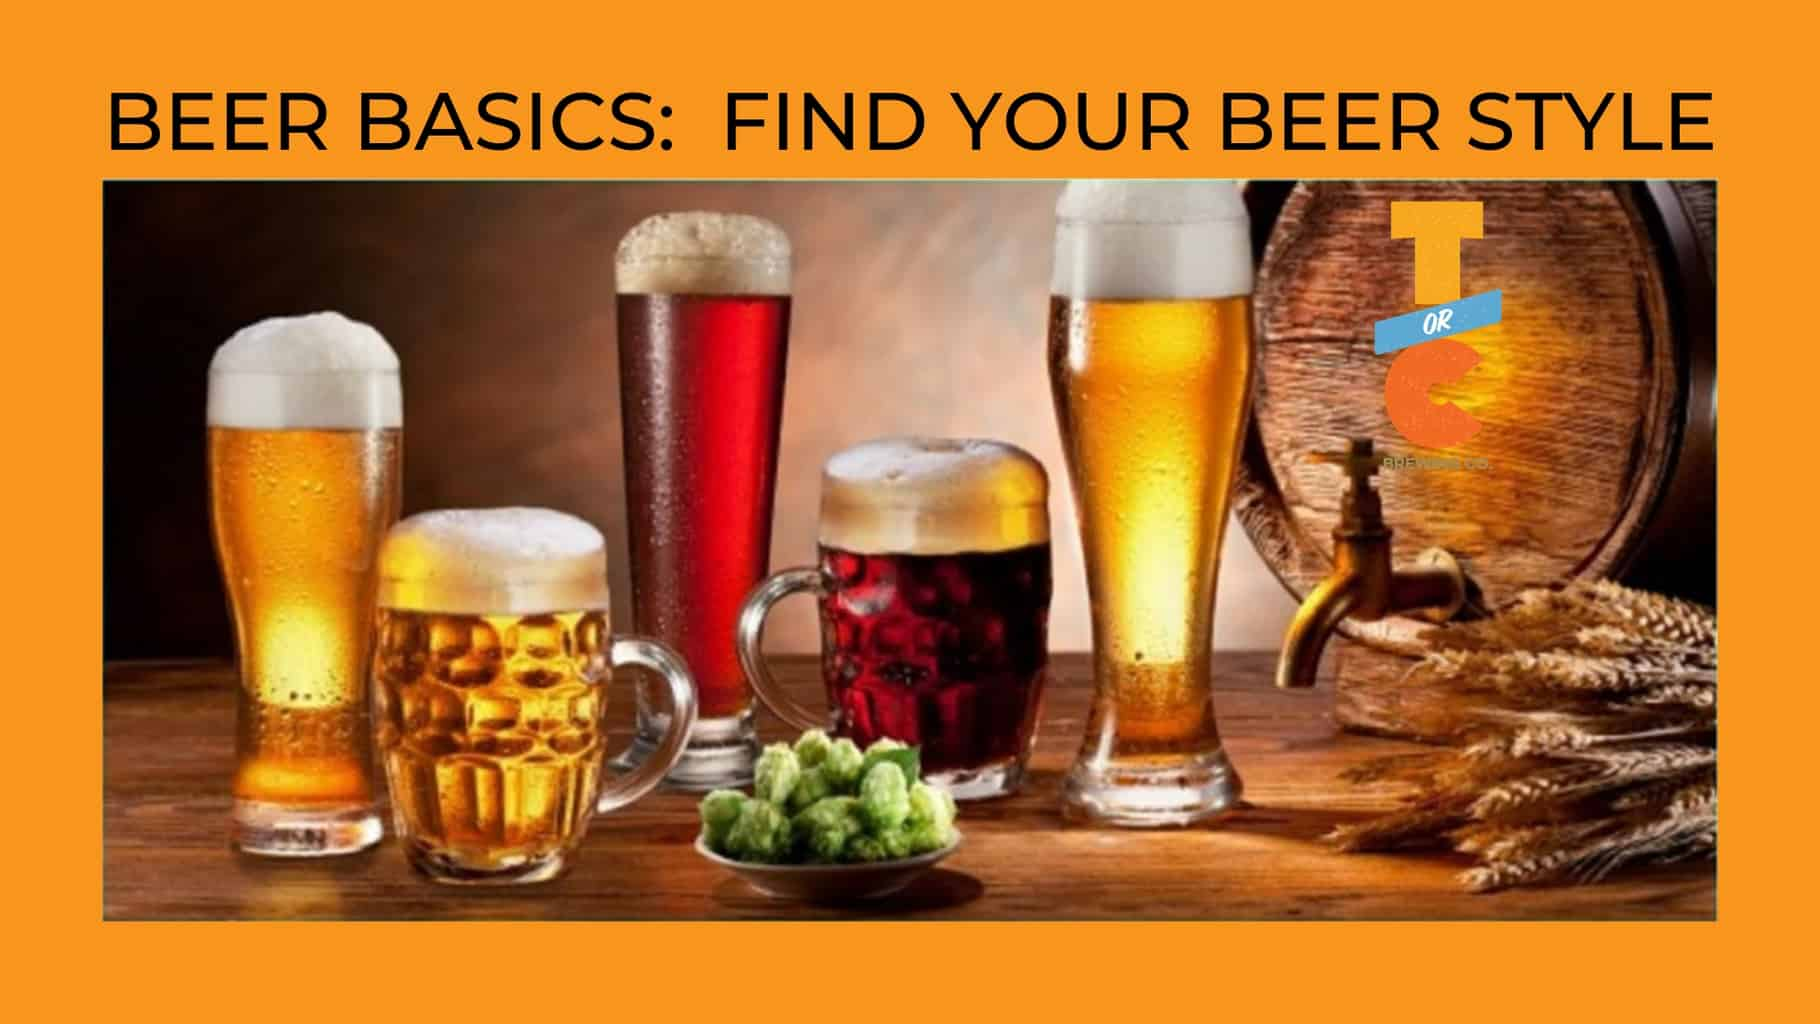 Beer Basics: Find Your Beer Style